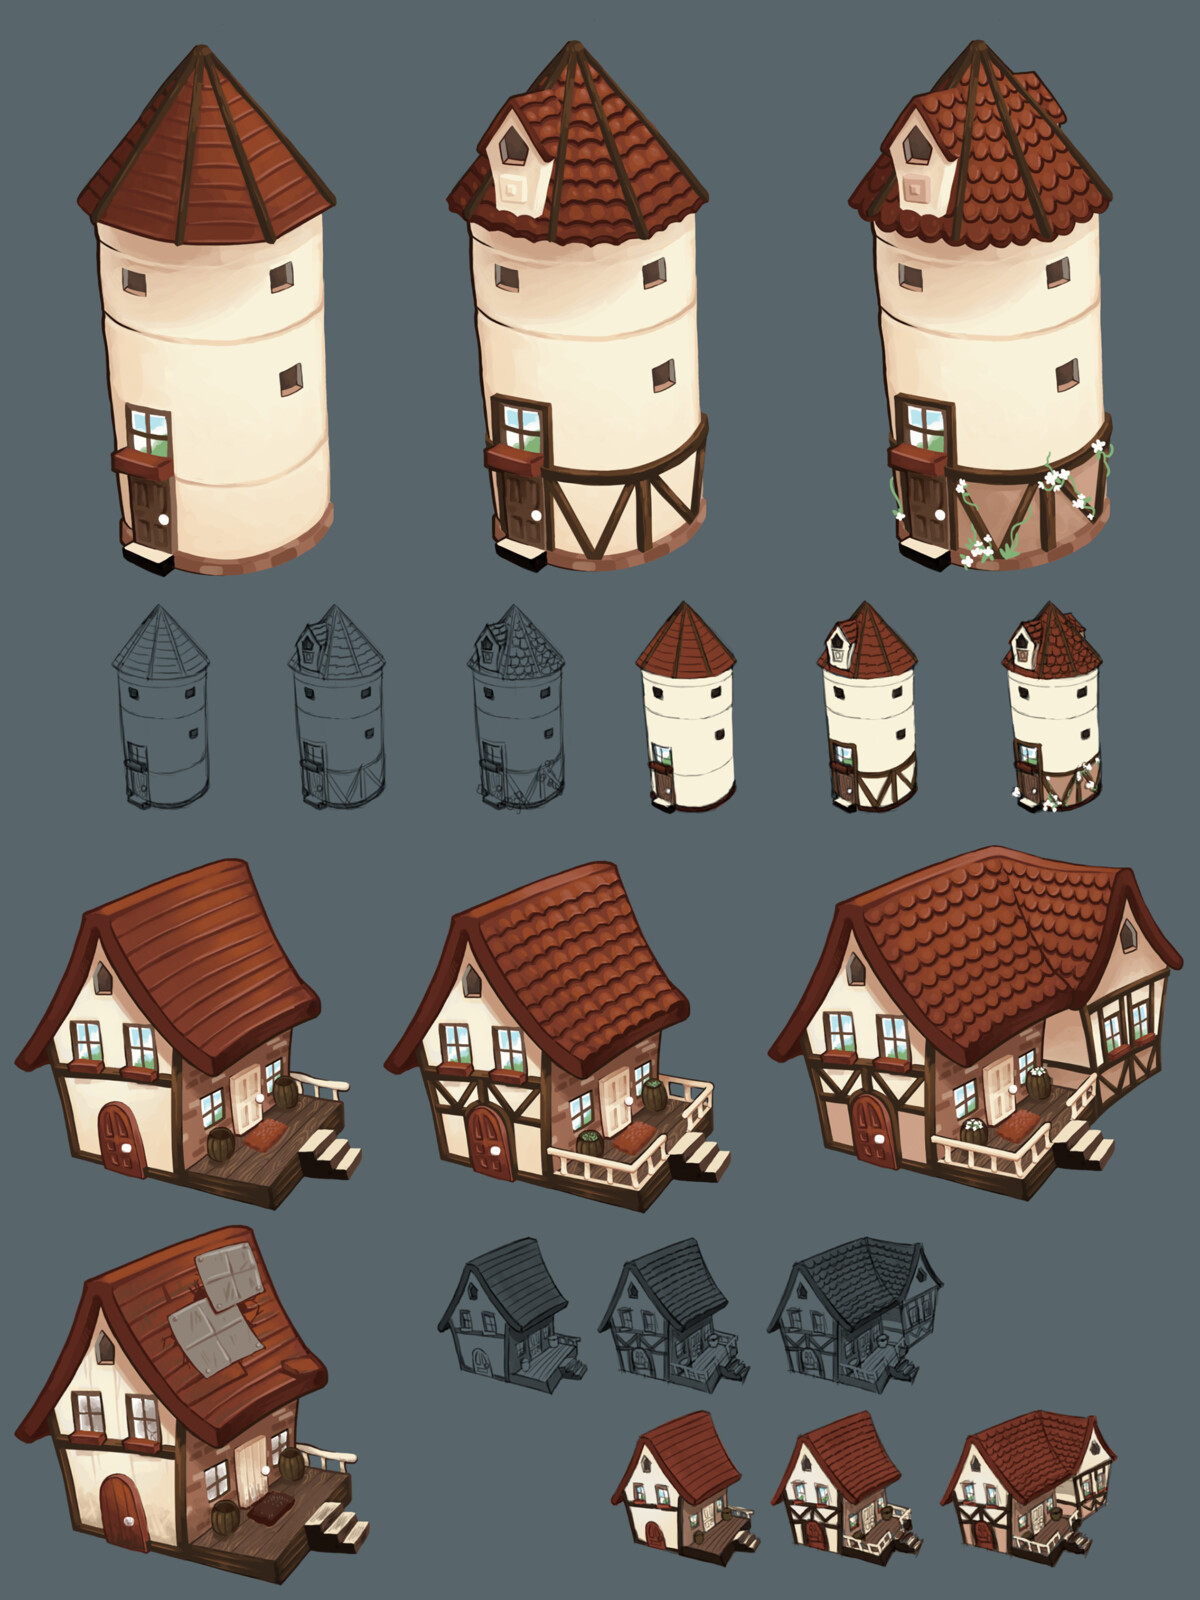 Farmer's silo and house + upgrades